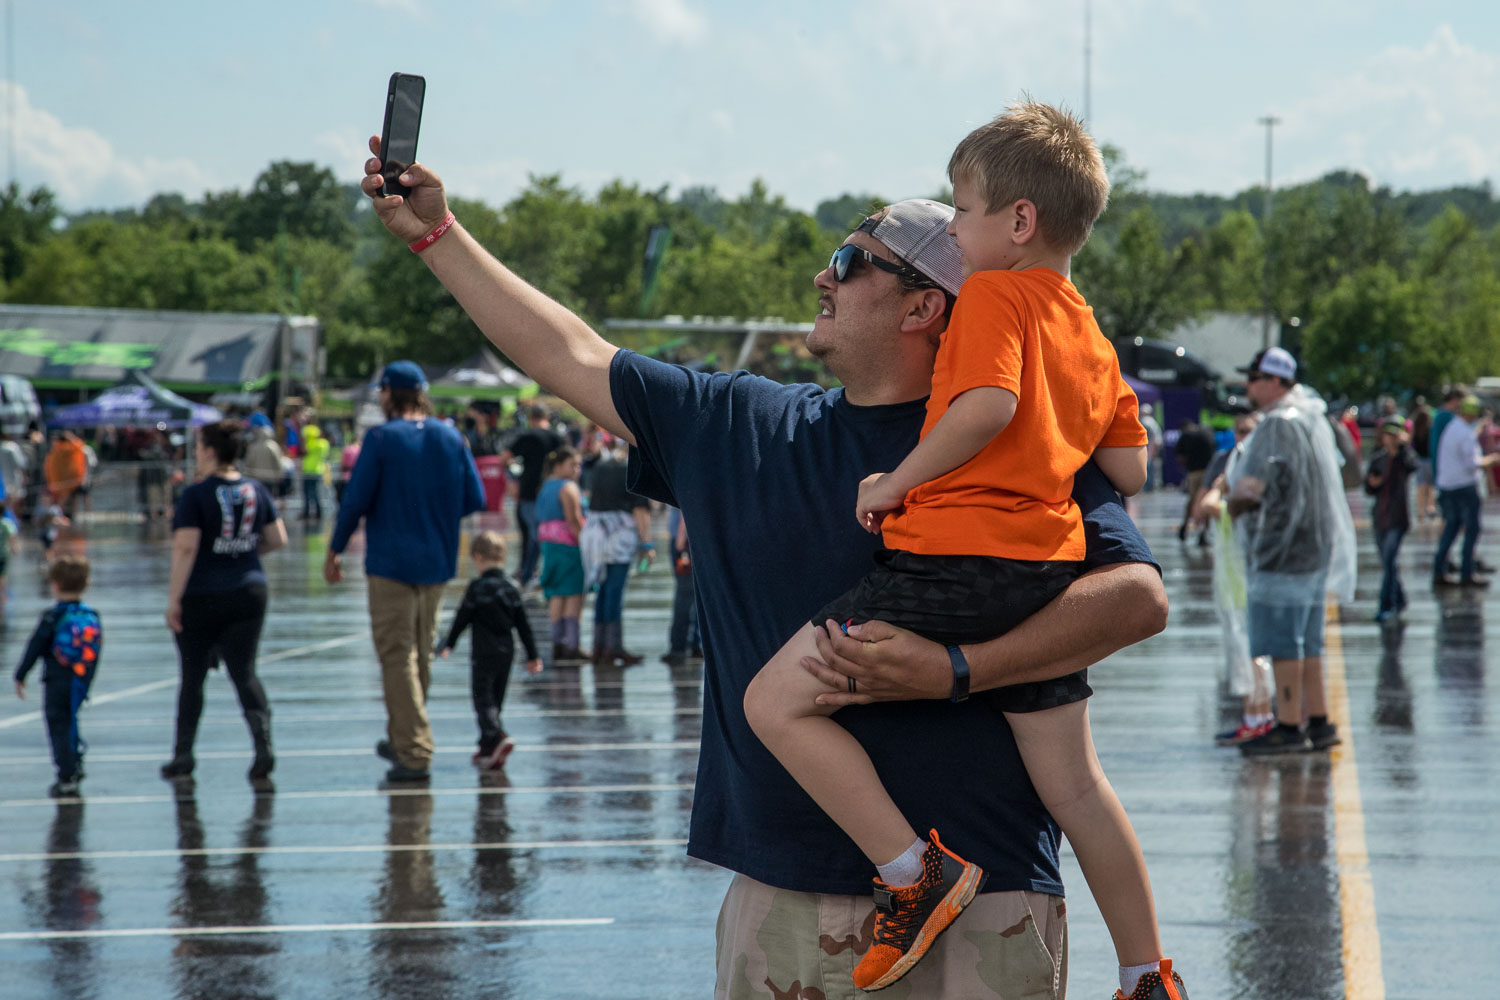 A father and son take a selfie together during the Monster Jam Pit Party prior to the main event at GEHA Field at Arrowhead on Saturday evening, June 26, 2021.